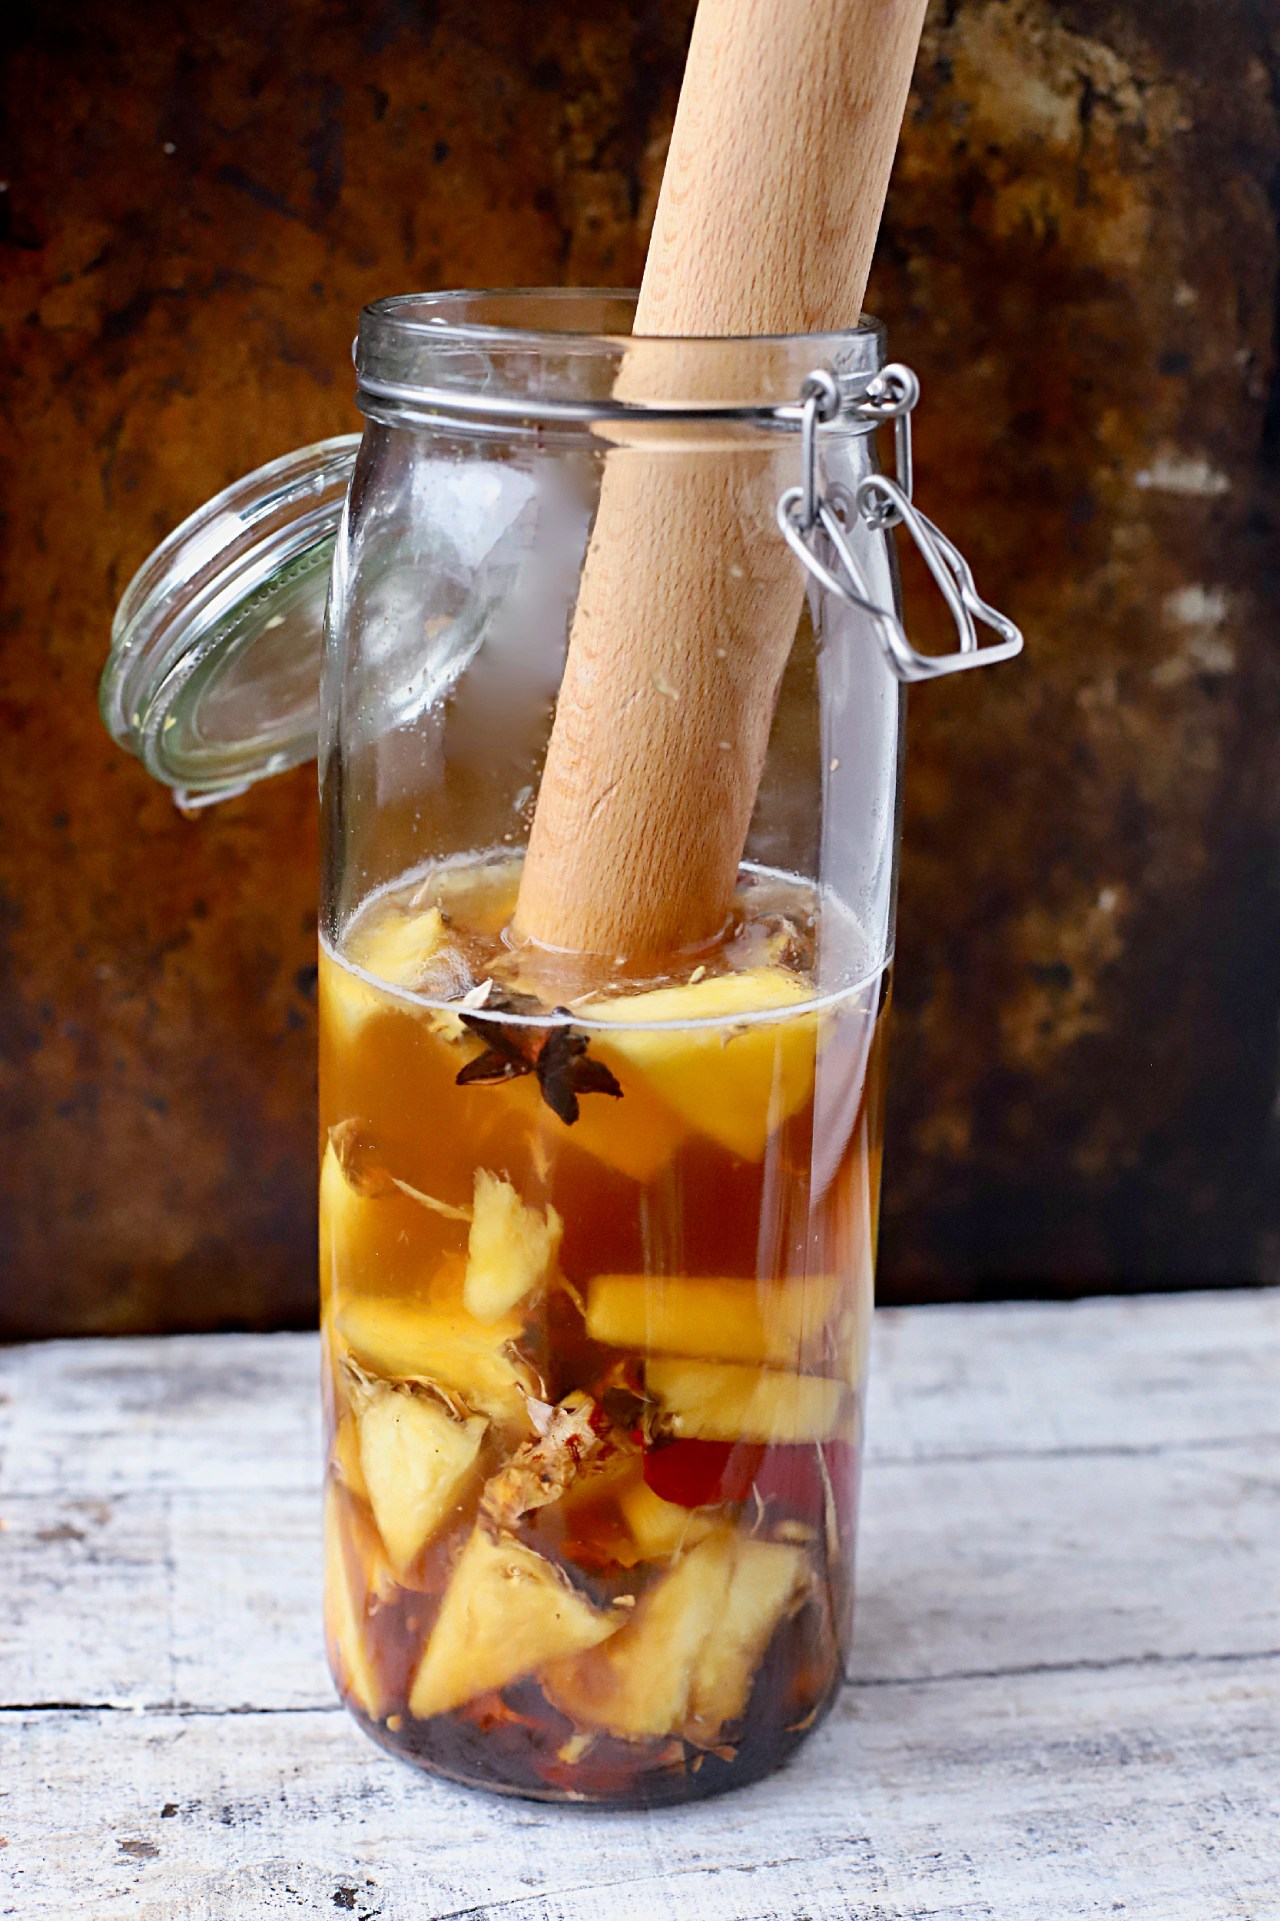 Beat the heat - and CO2 shortages - with tepache, the fermented natural soft drink from Mexico. It's very easy to make, healthy and thirst-quenching. It's great for gut health, too. #fermented #drinks #Mexican #softdrink #tepache #pineapple